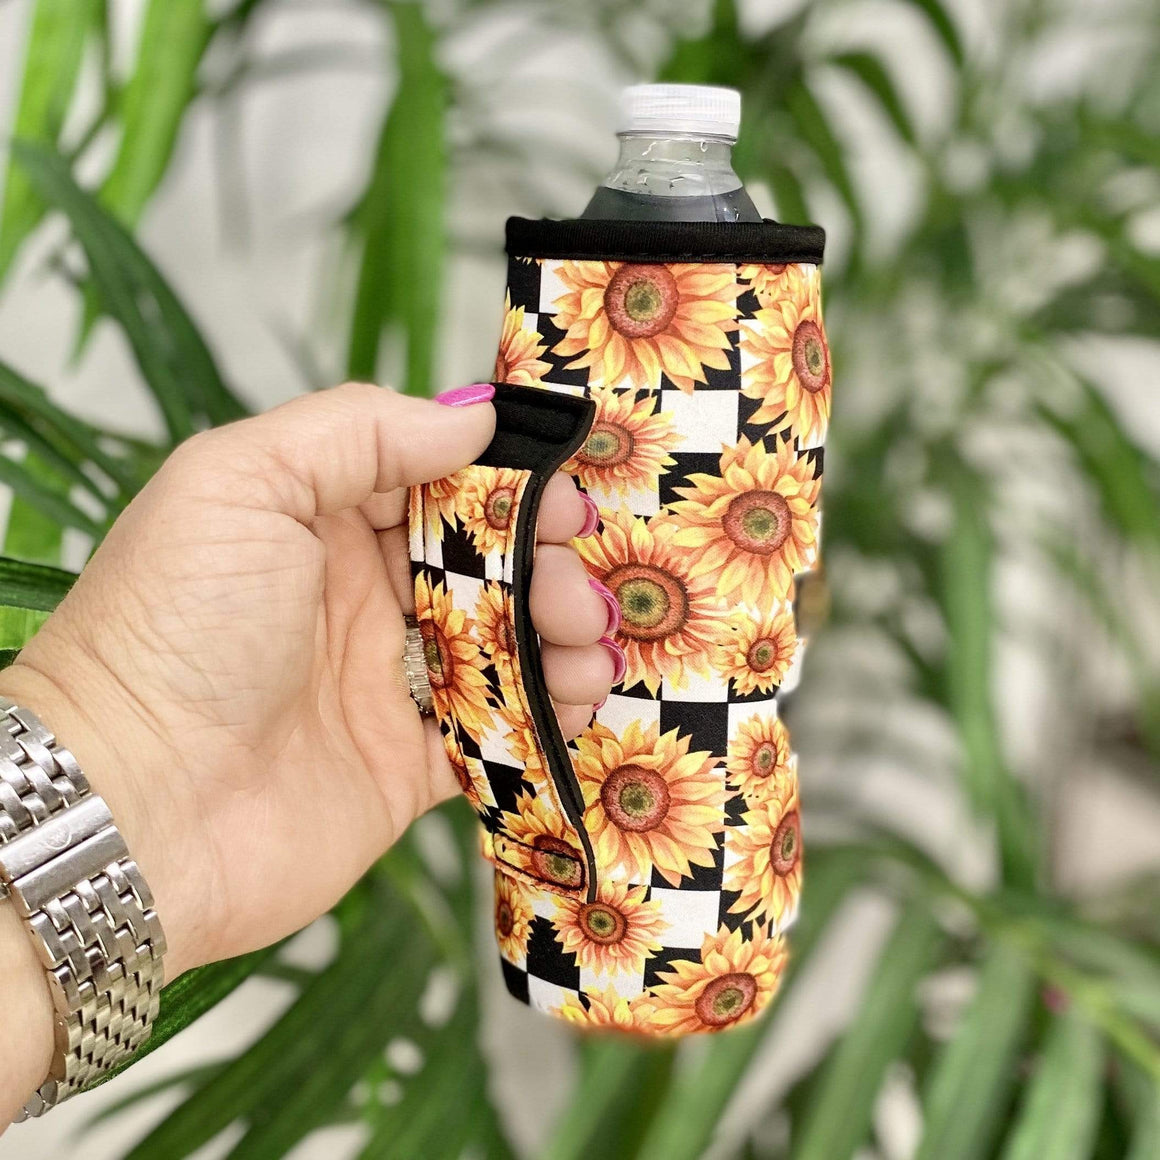 Checkered Sunflower Water Bottle Koozie Shabby Chic Boutique and Tanning Salon